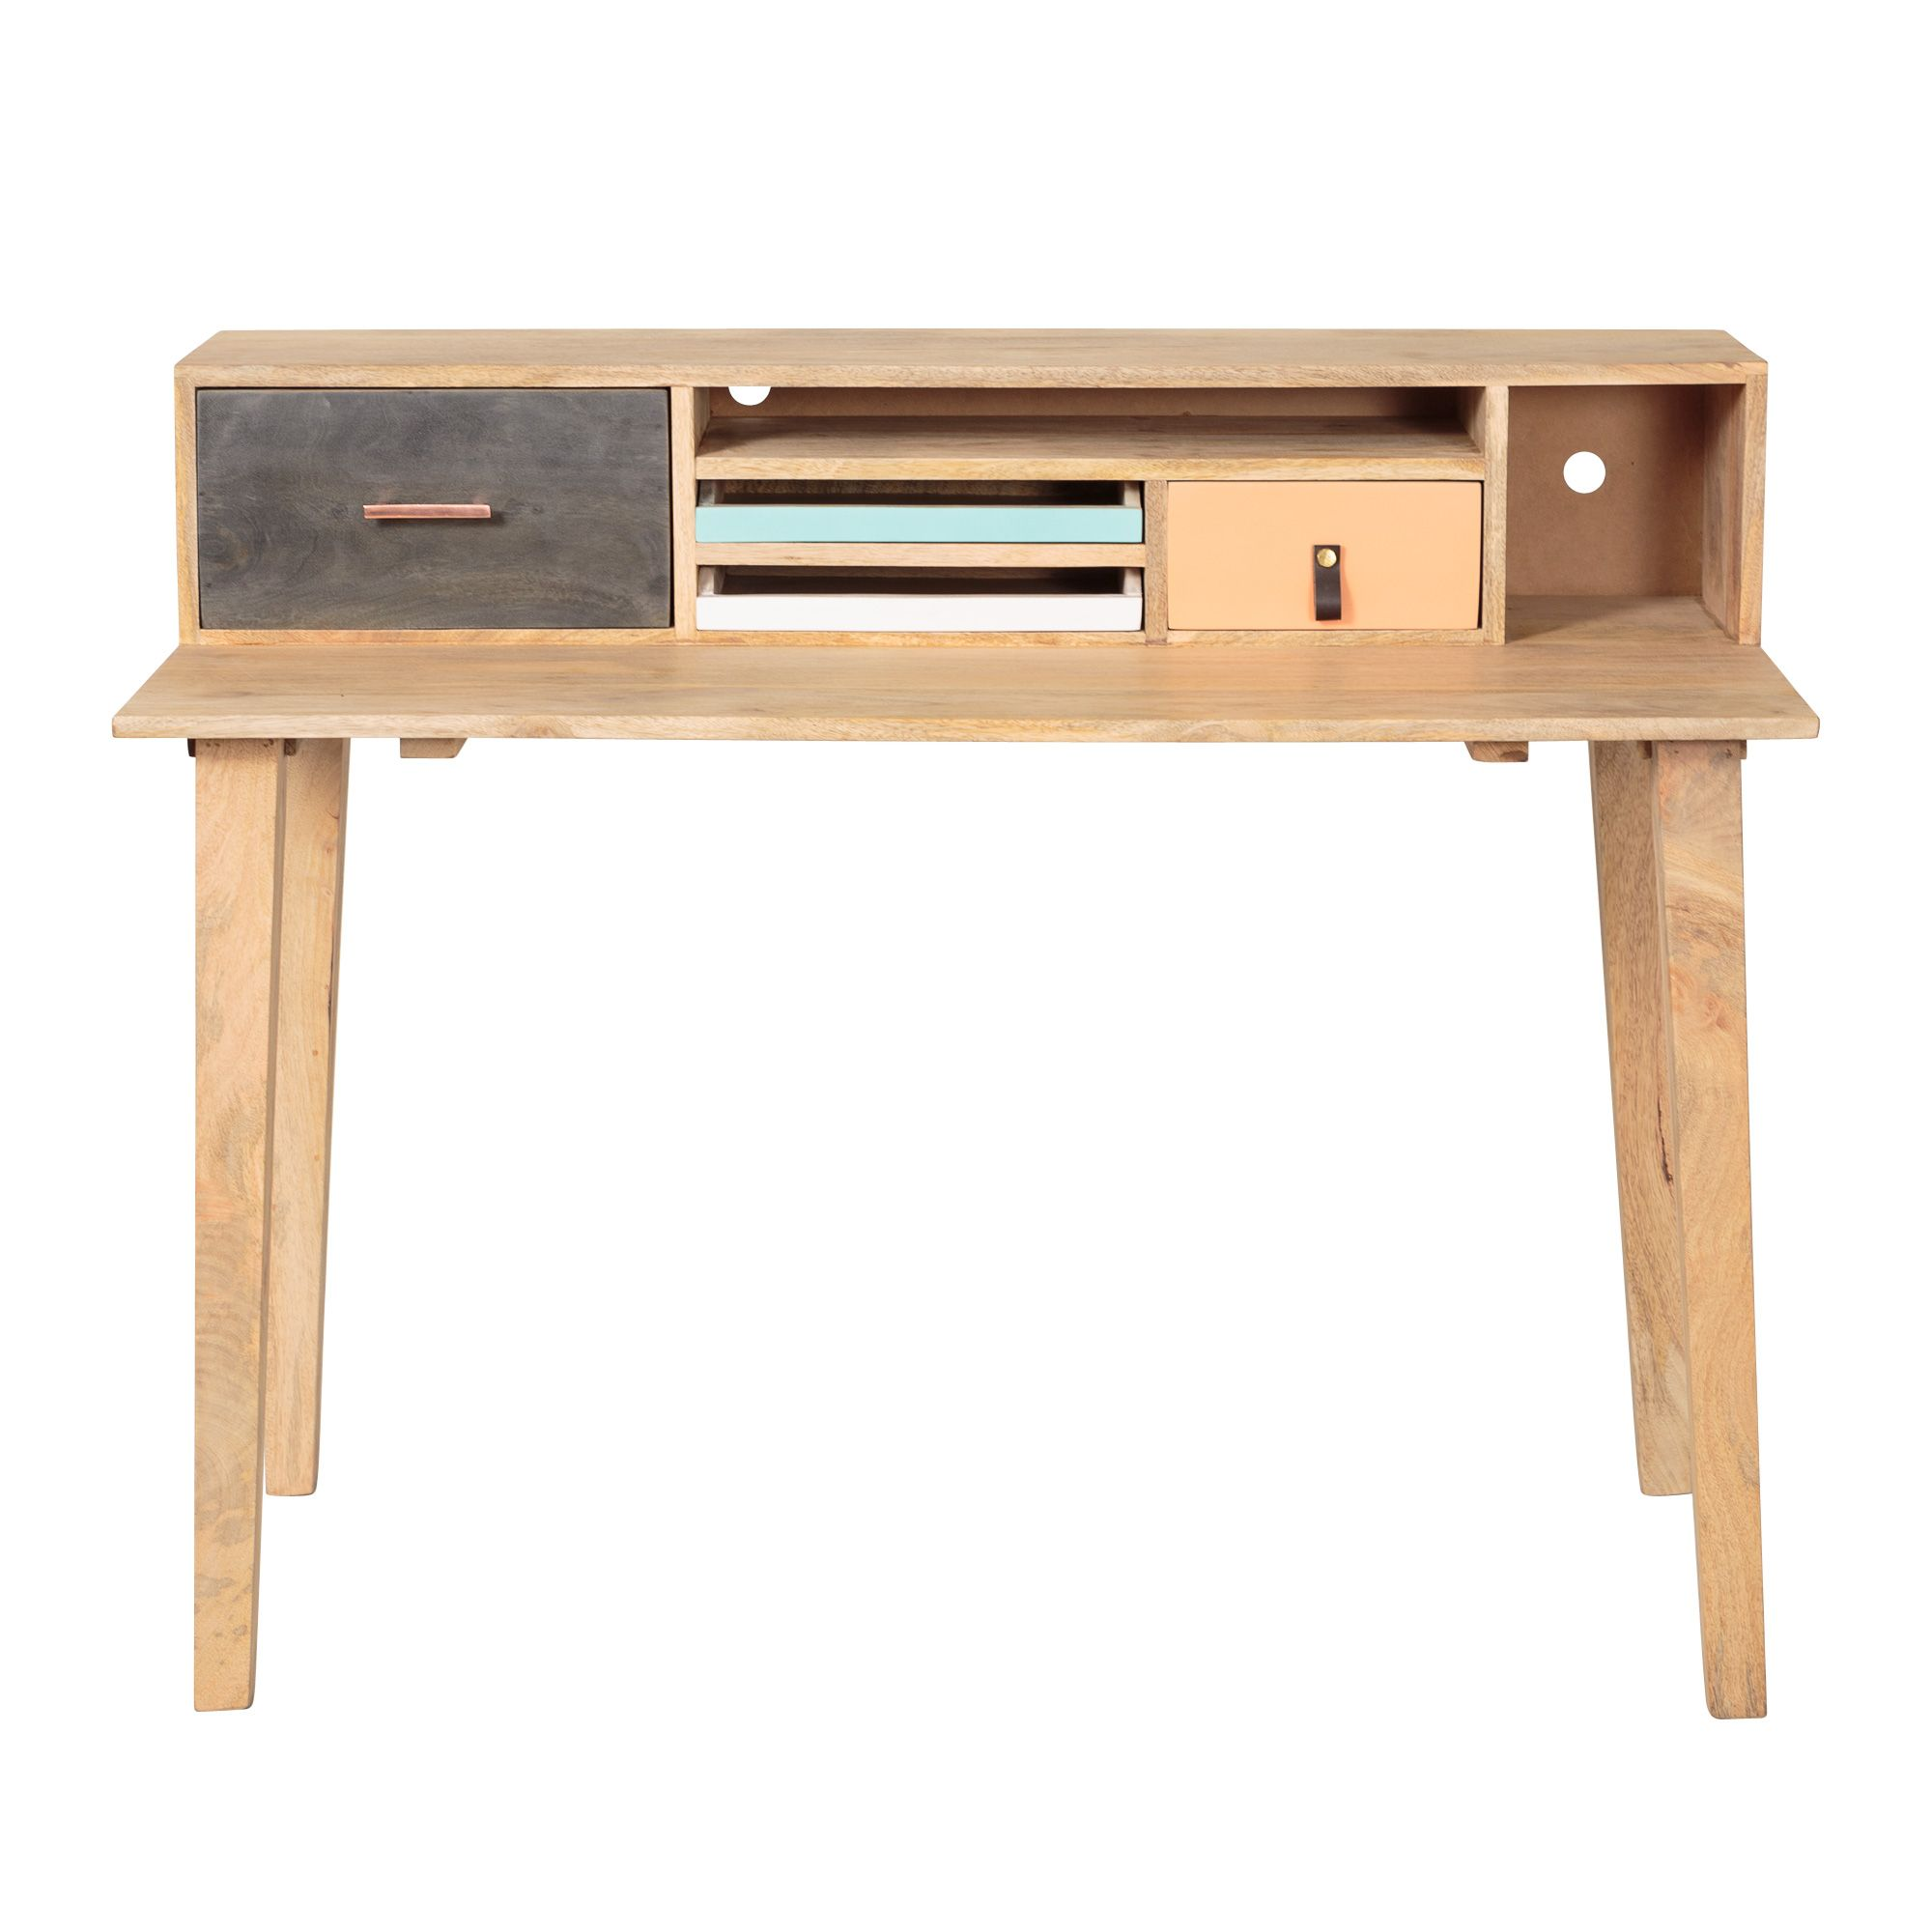 Fantastic furniture hallway table  Buy the Black Florence Desk at Oliver Bonas We deliver Homeware